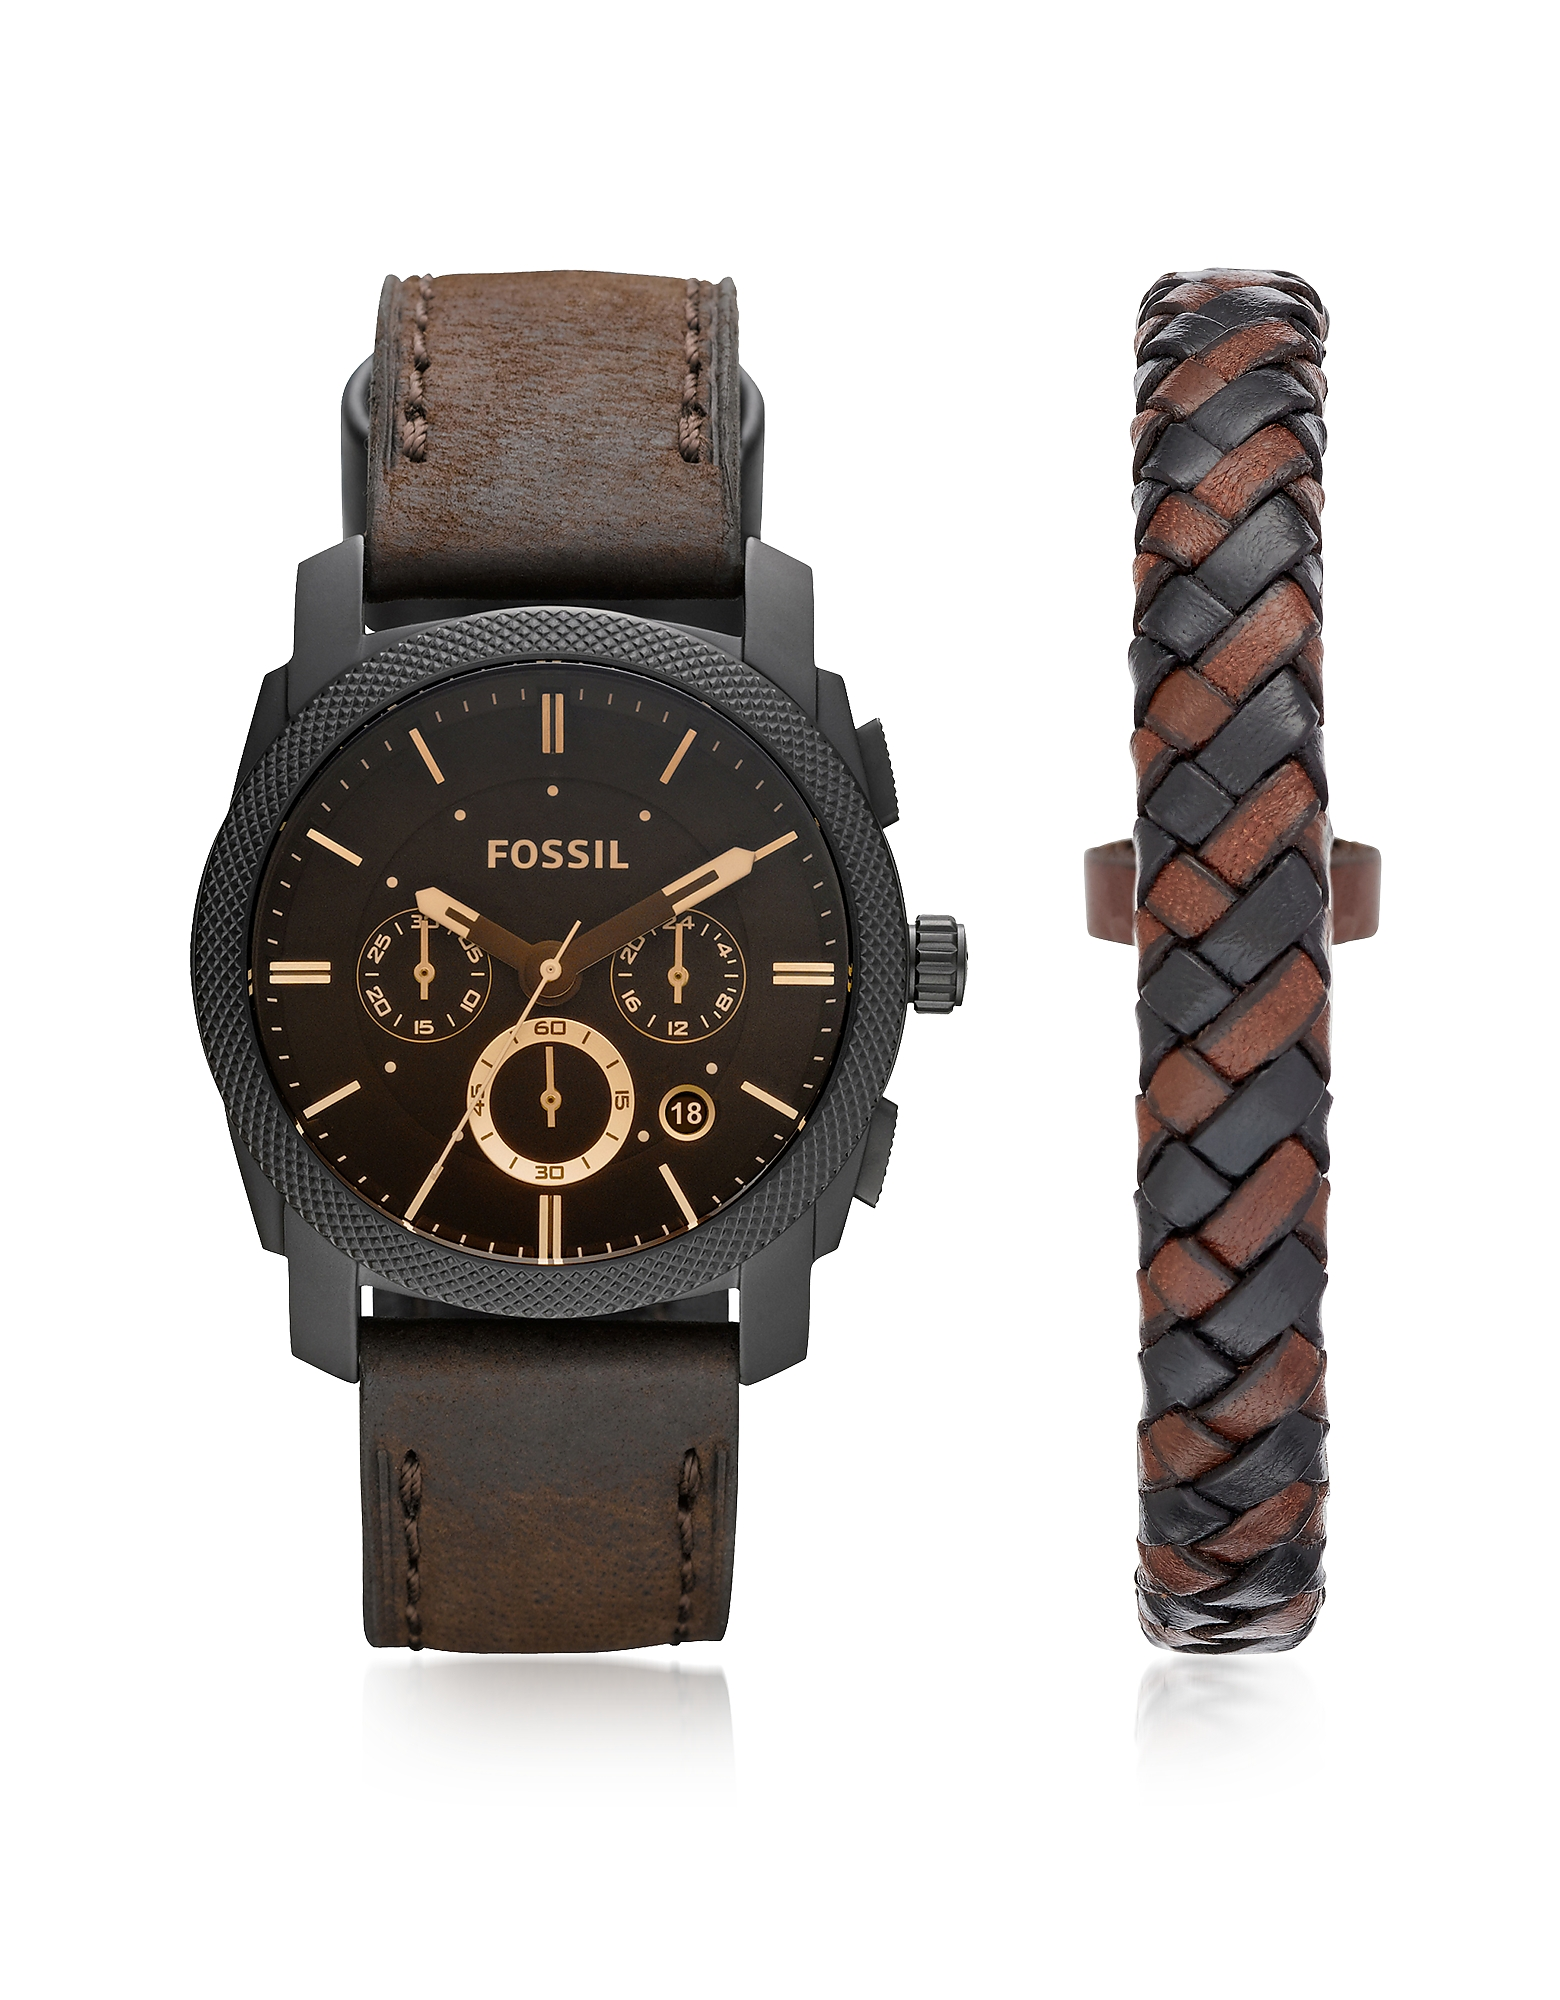 Fossil Men's Watches, Machine Chronograph Dark Brown Leather Men's Watch and Bracelet Box Set